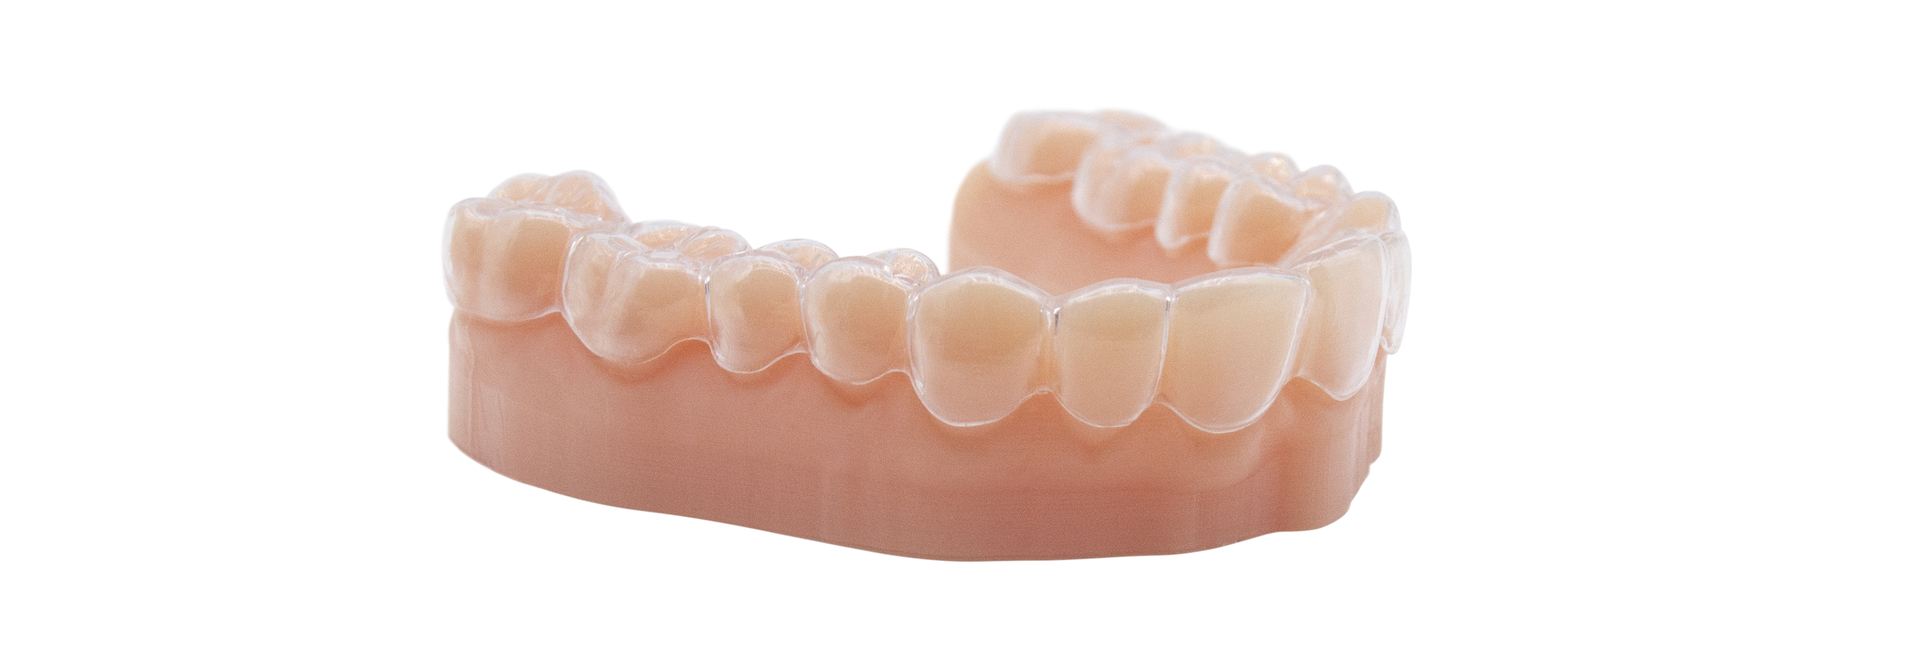 Dental model printed with LD10